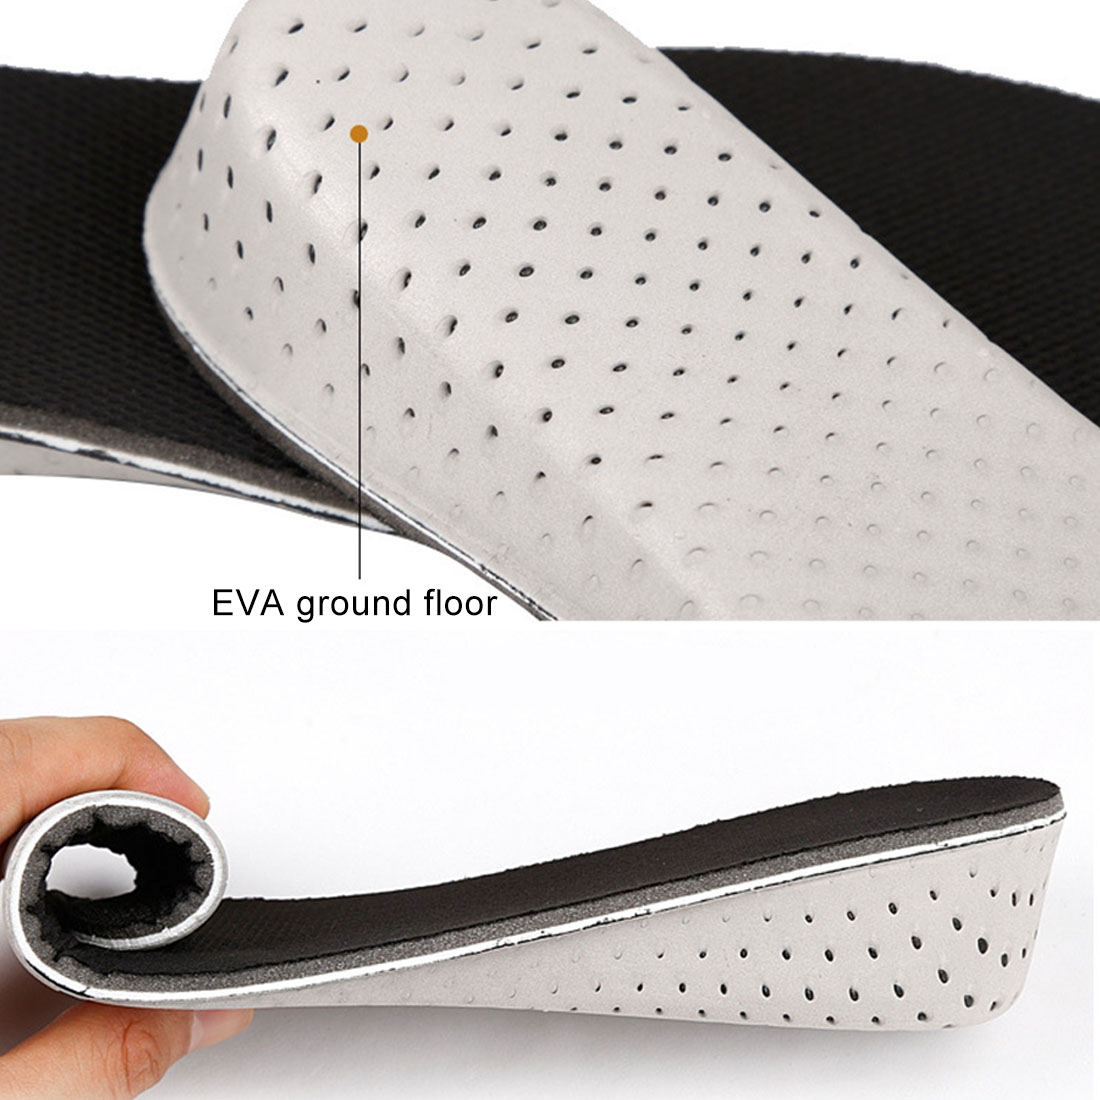 1 Pair EVA Breathable Insert Shoes Height Increase Insoles, Height: 4cm